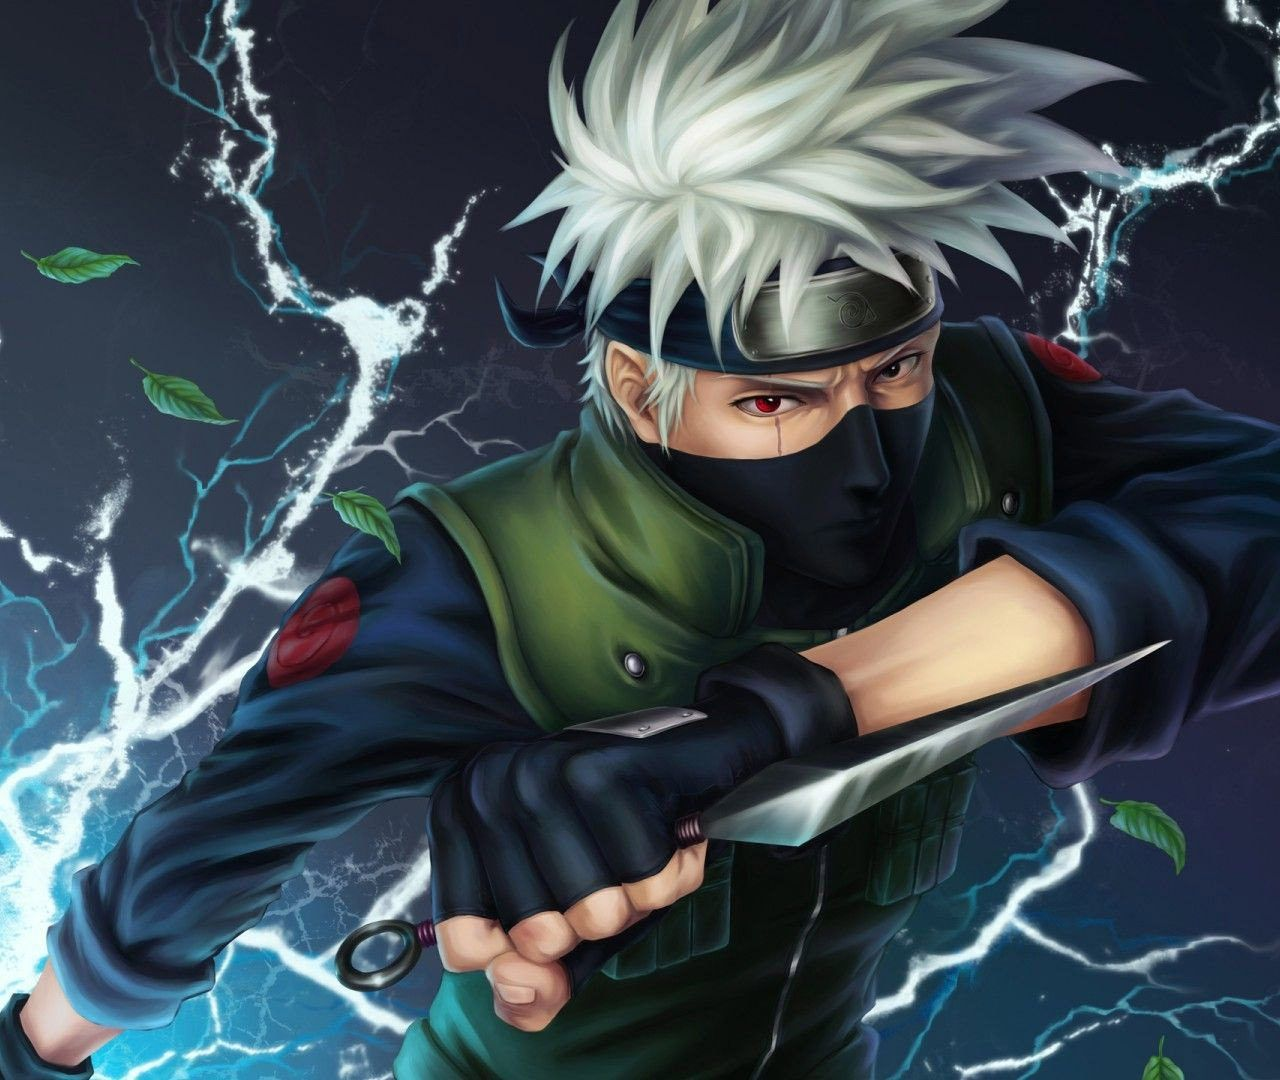 Wallpaper Naruto Keren 3d 3d Naruto Wallpaper For Android Wall Bestkitchenview Co Naruto In 2020 Naruto Wallpaper Android Wallpaper Anime Naruto And Sasuke Wallpaper